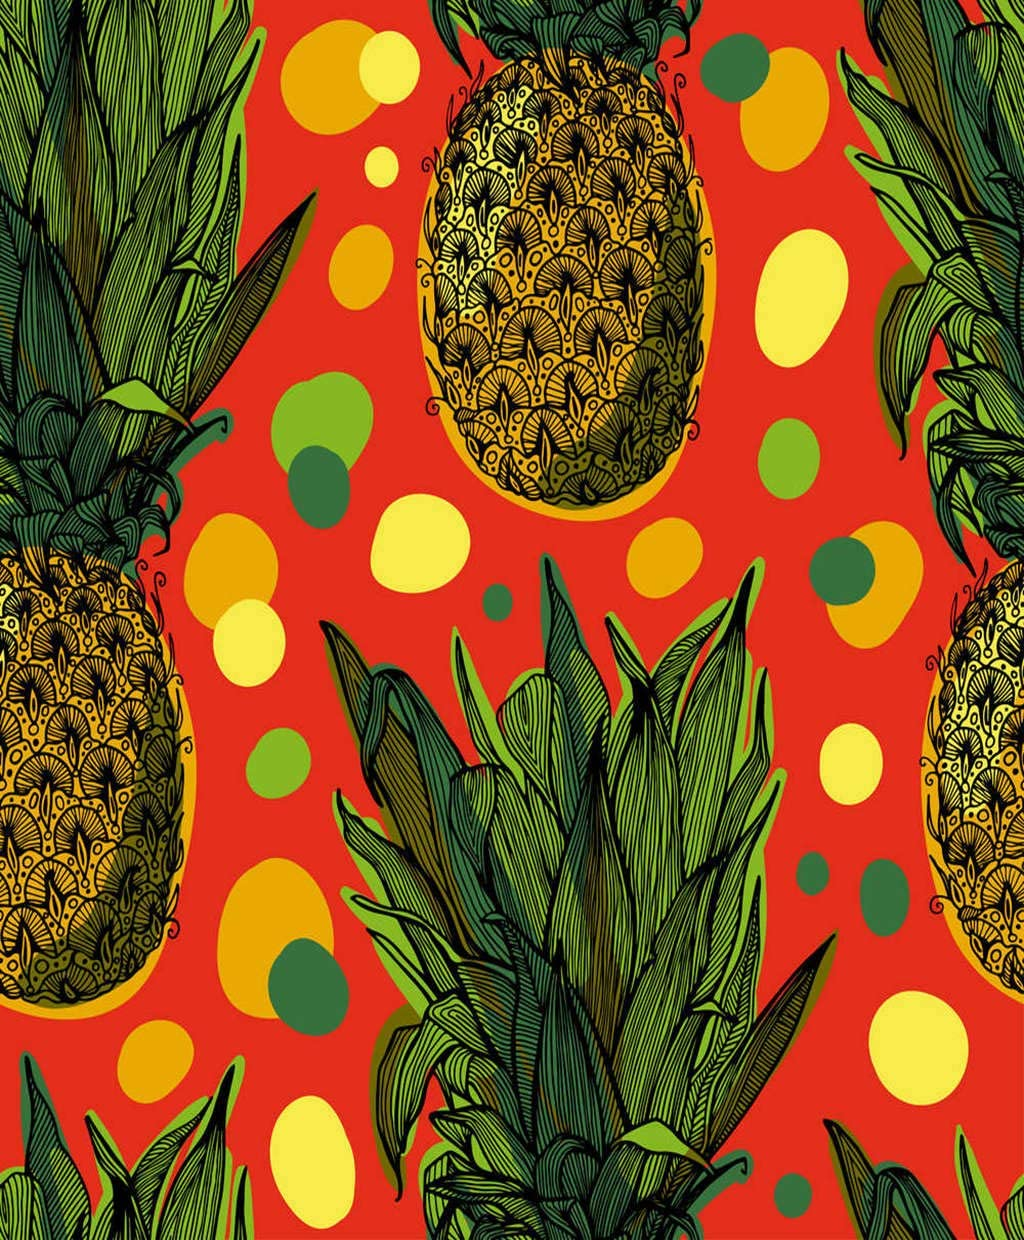 Qewhyn Tropical Fruits Poster Pineapple Sweet Fruit Ananas Exotic Wall Art Painting Print Home Artwork Decoration for Living Room Bedroom Office Unframed 18x24 lnches